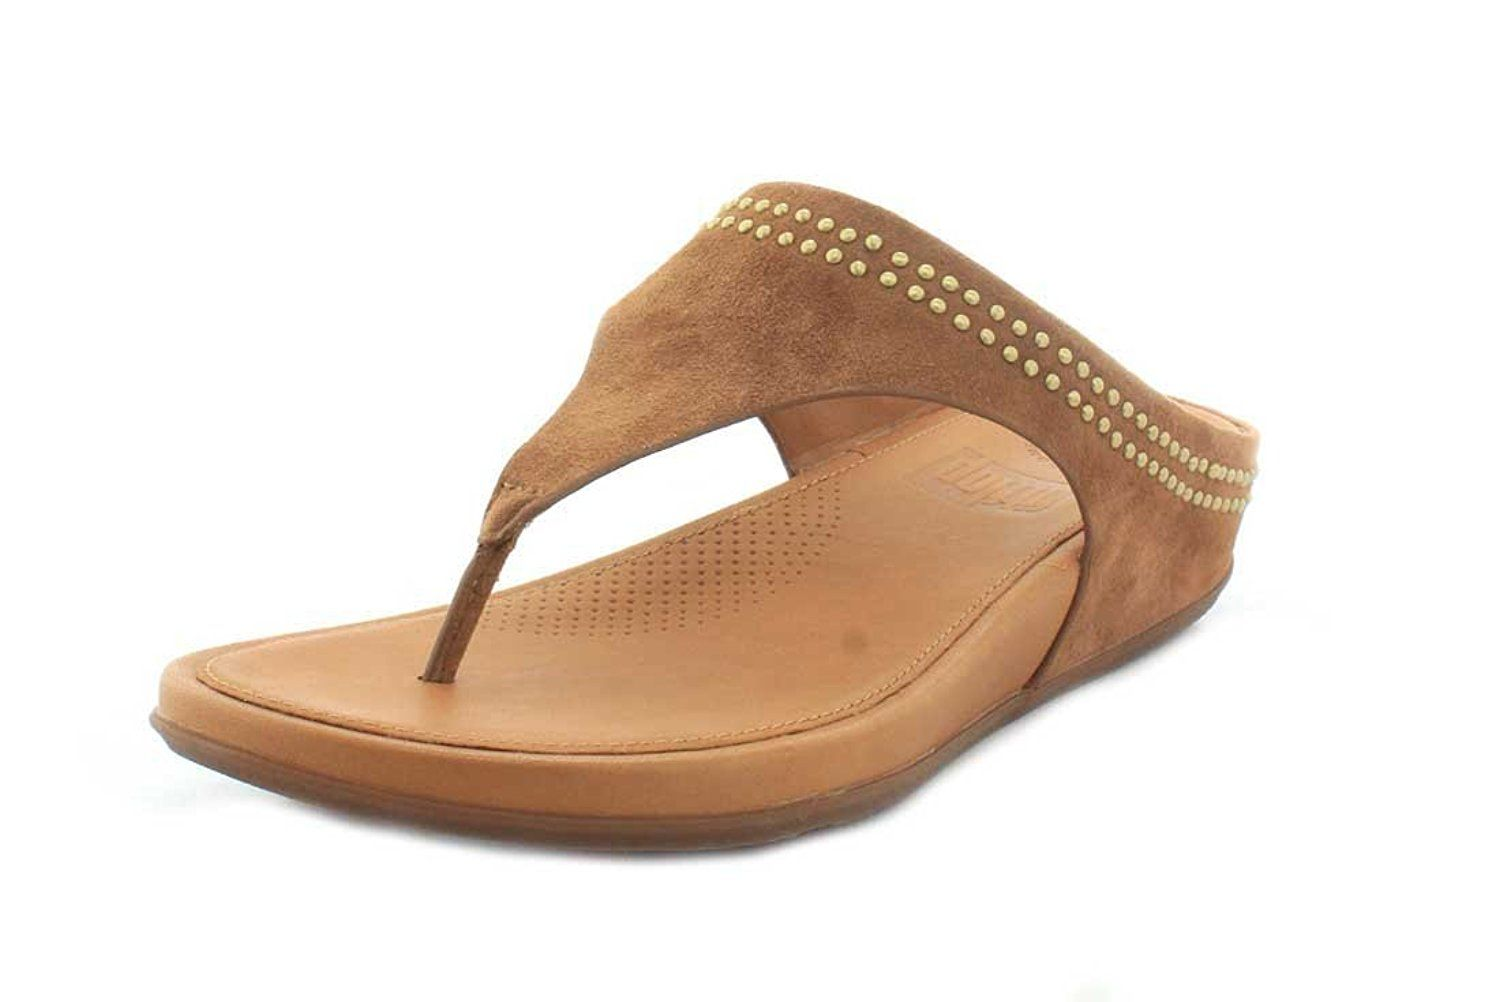 8ec81c1cc71cb FitFlop Trade  Womens Banda Trade  Suede Toe-Thong Sandals with Studs.  Click here for the women s FitFlop sizing guide. Women s  Shoes